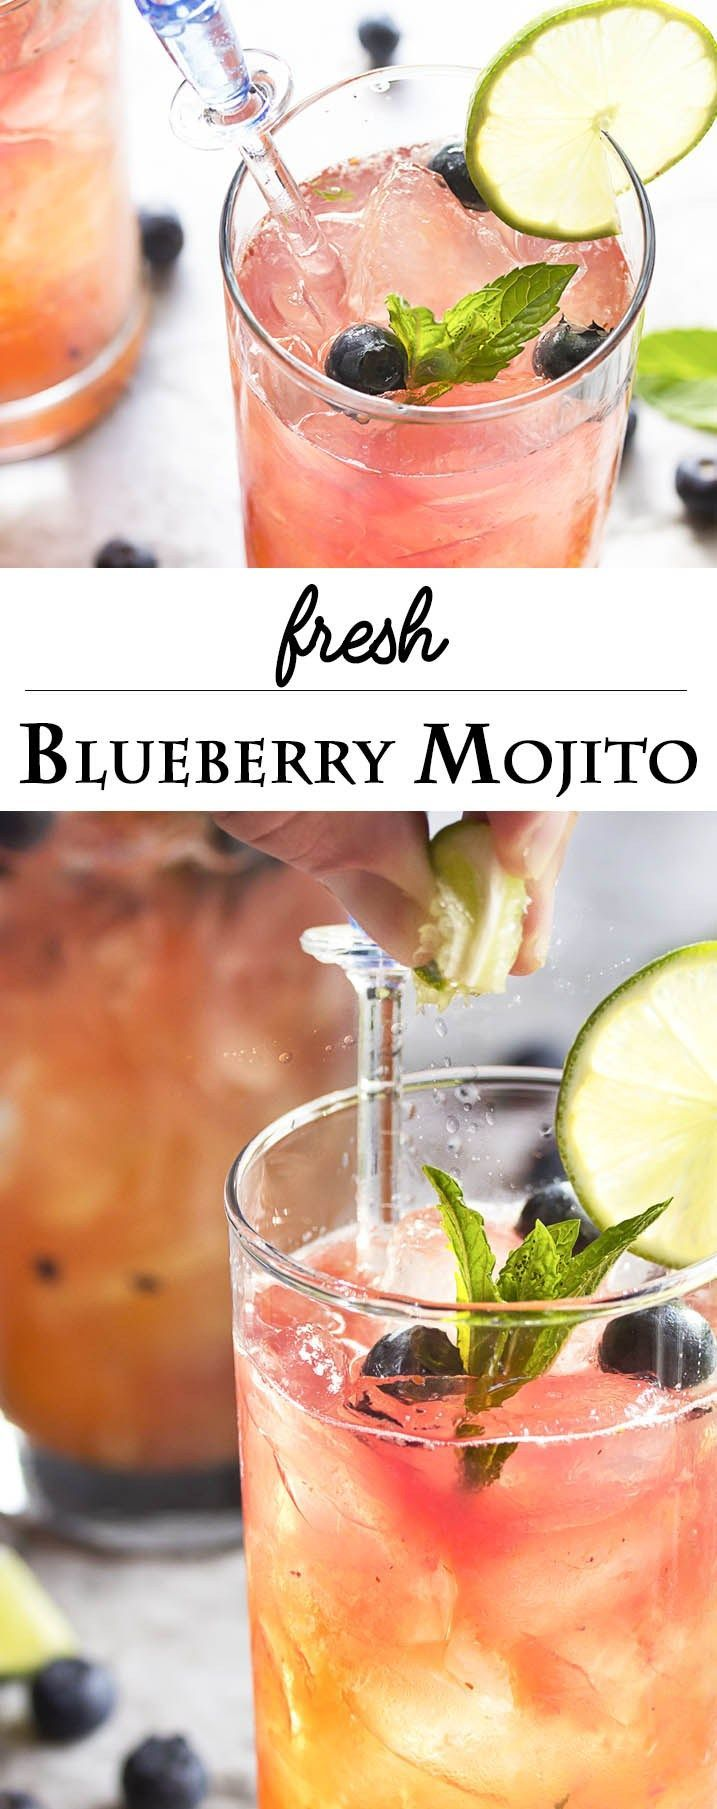 Fresh Blueberry Mojito - This blueberry mojito is full of fresh blueberry and mint flavor, and is an easy and refreshing summer drink perfect for sipping out of a straw. Great for cookouts or a warm evening on your deck! | http://justalittlebitofbacon.com